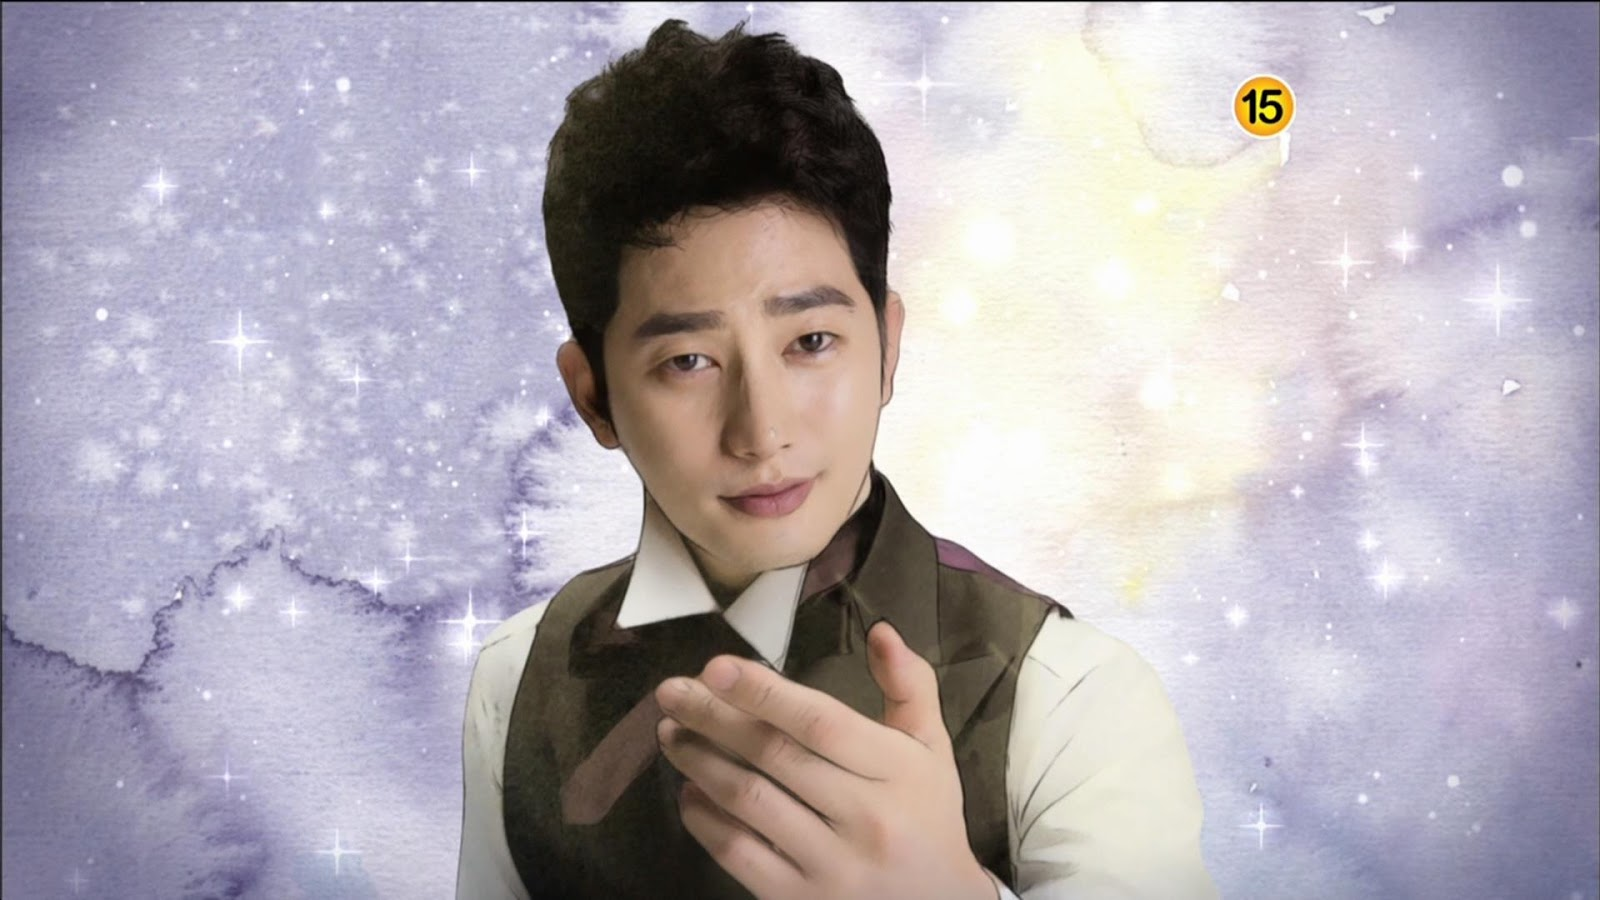 park shi hoo and moon chae won relationship test